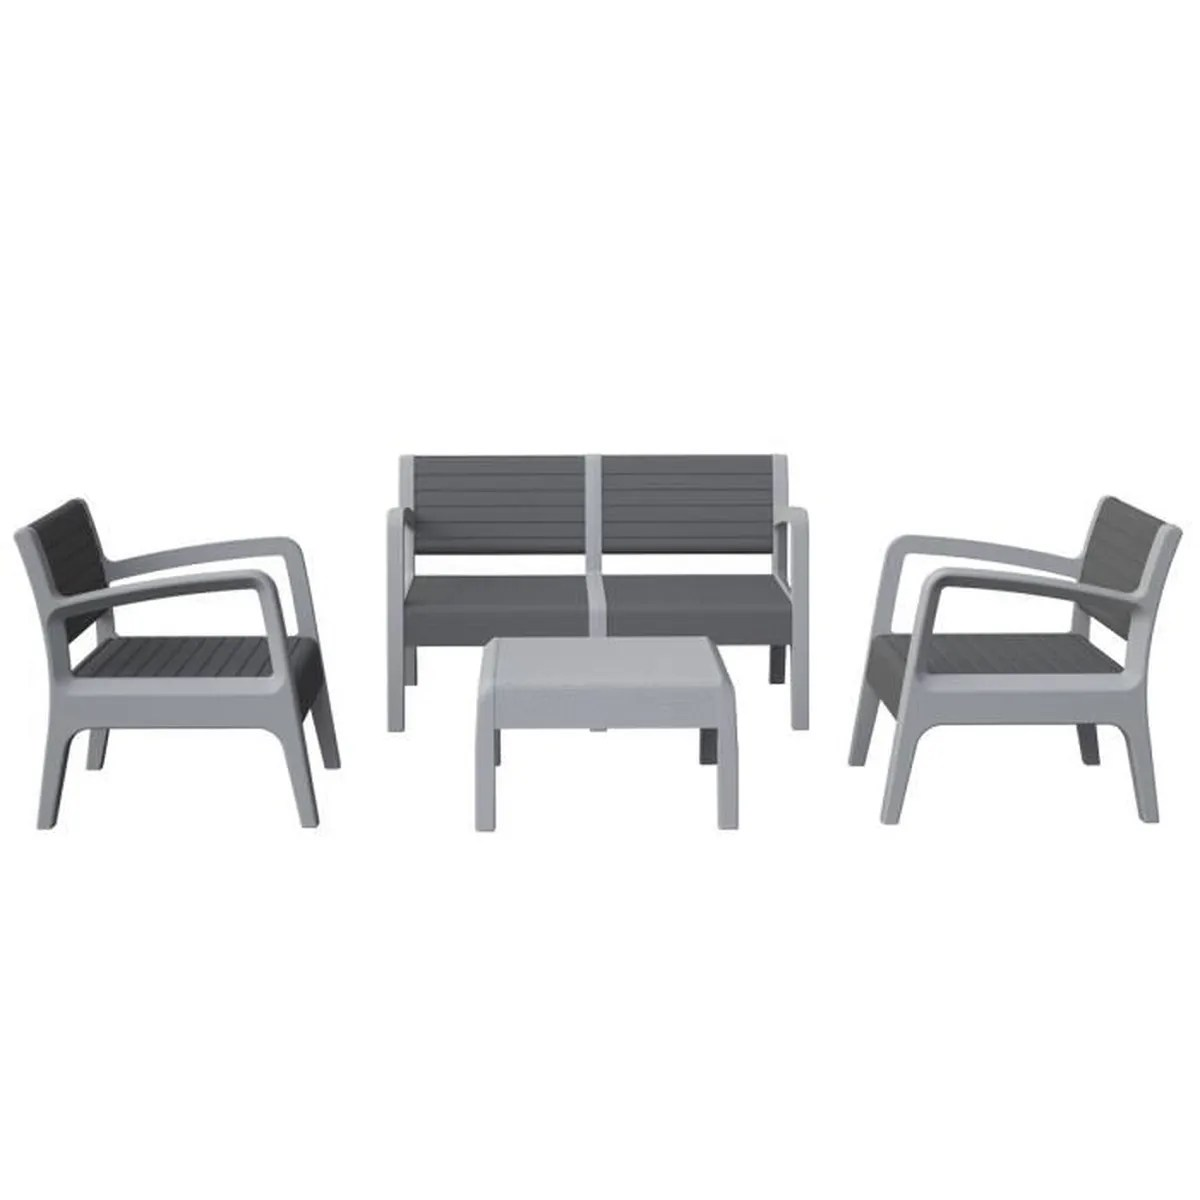 Salon De Jardin Miami Ensemble Miami Canapé 2 Fauteuils 1 Table Basse Gris Anthracite